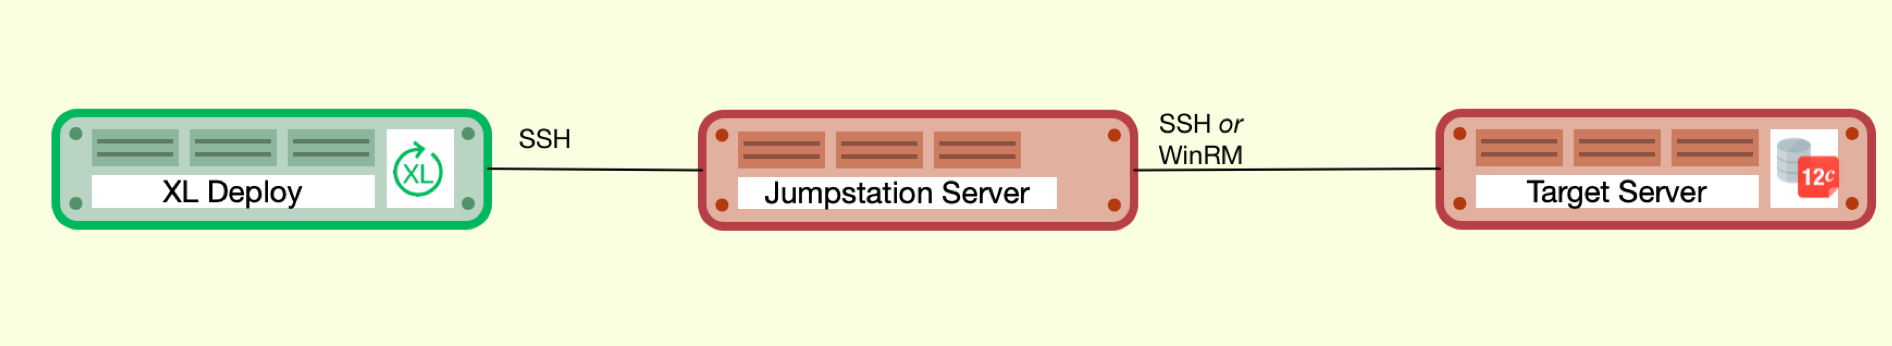 Deploy connects using jumpstation to target server